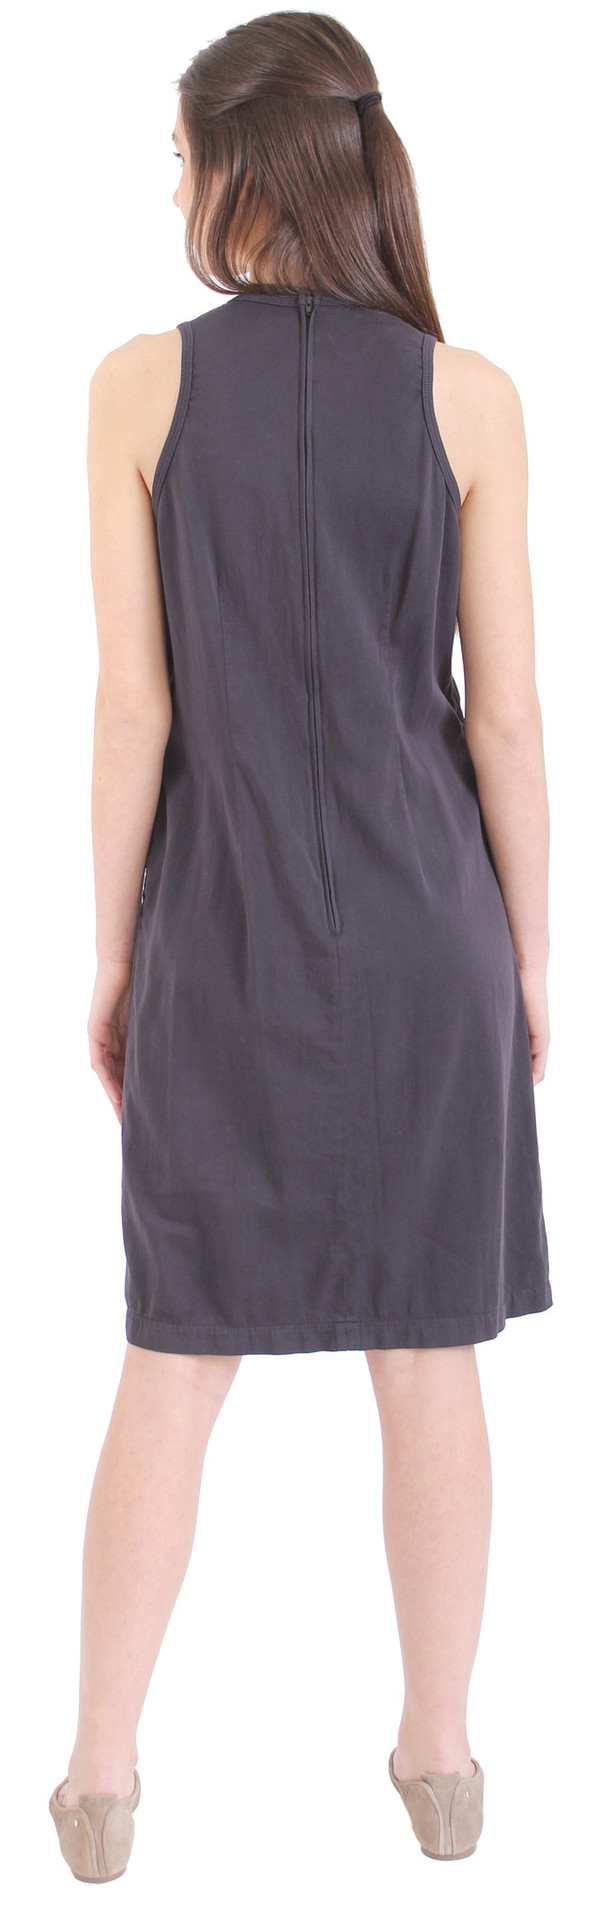 Prairie Underground Breccia Dress